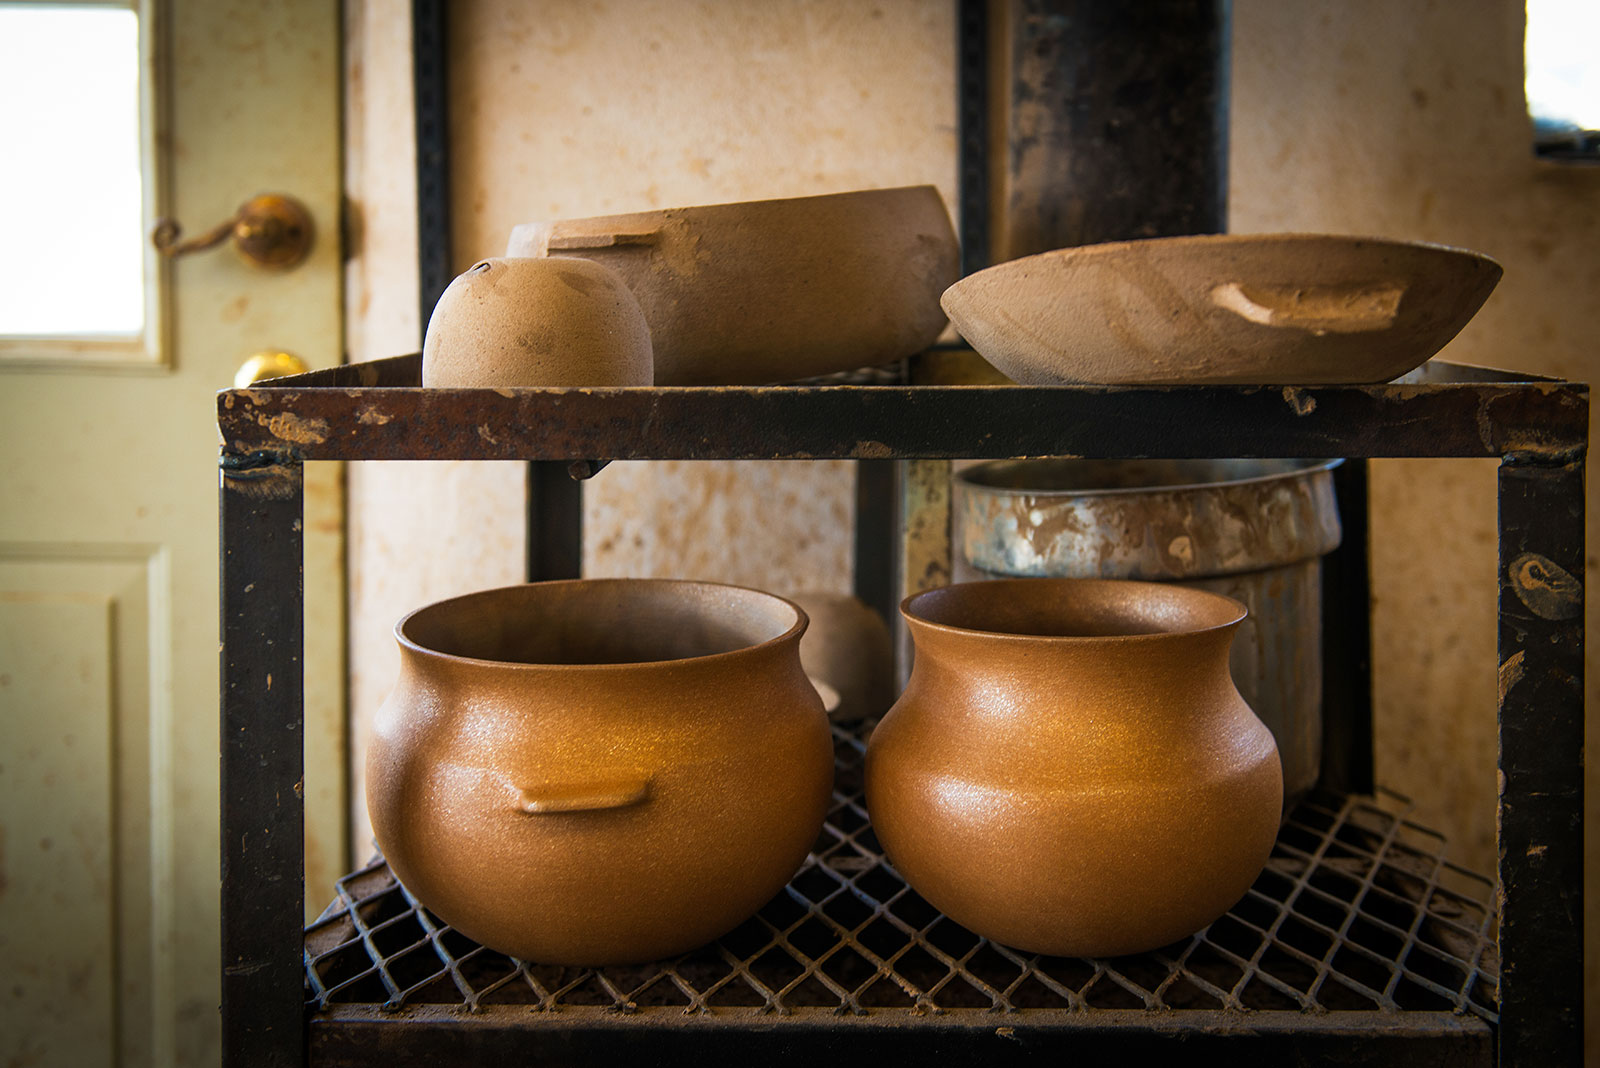 Even before an Ortega pot is fired it begins to glow, due to its myriad flecks of mica. For a complete portrait of Ortega's work as it progresses, see this photo essay.